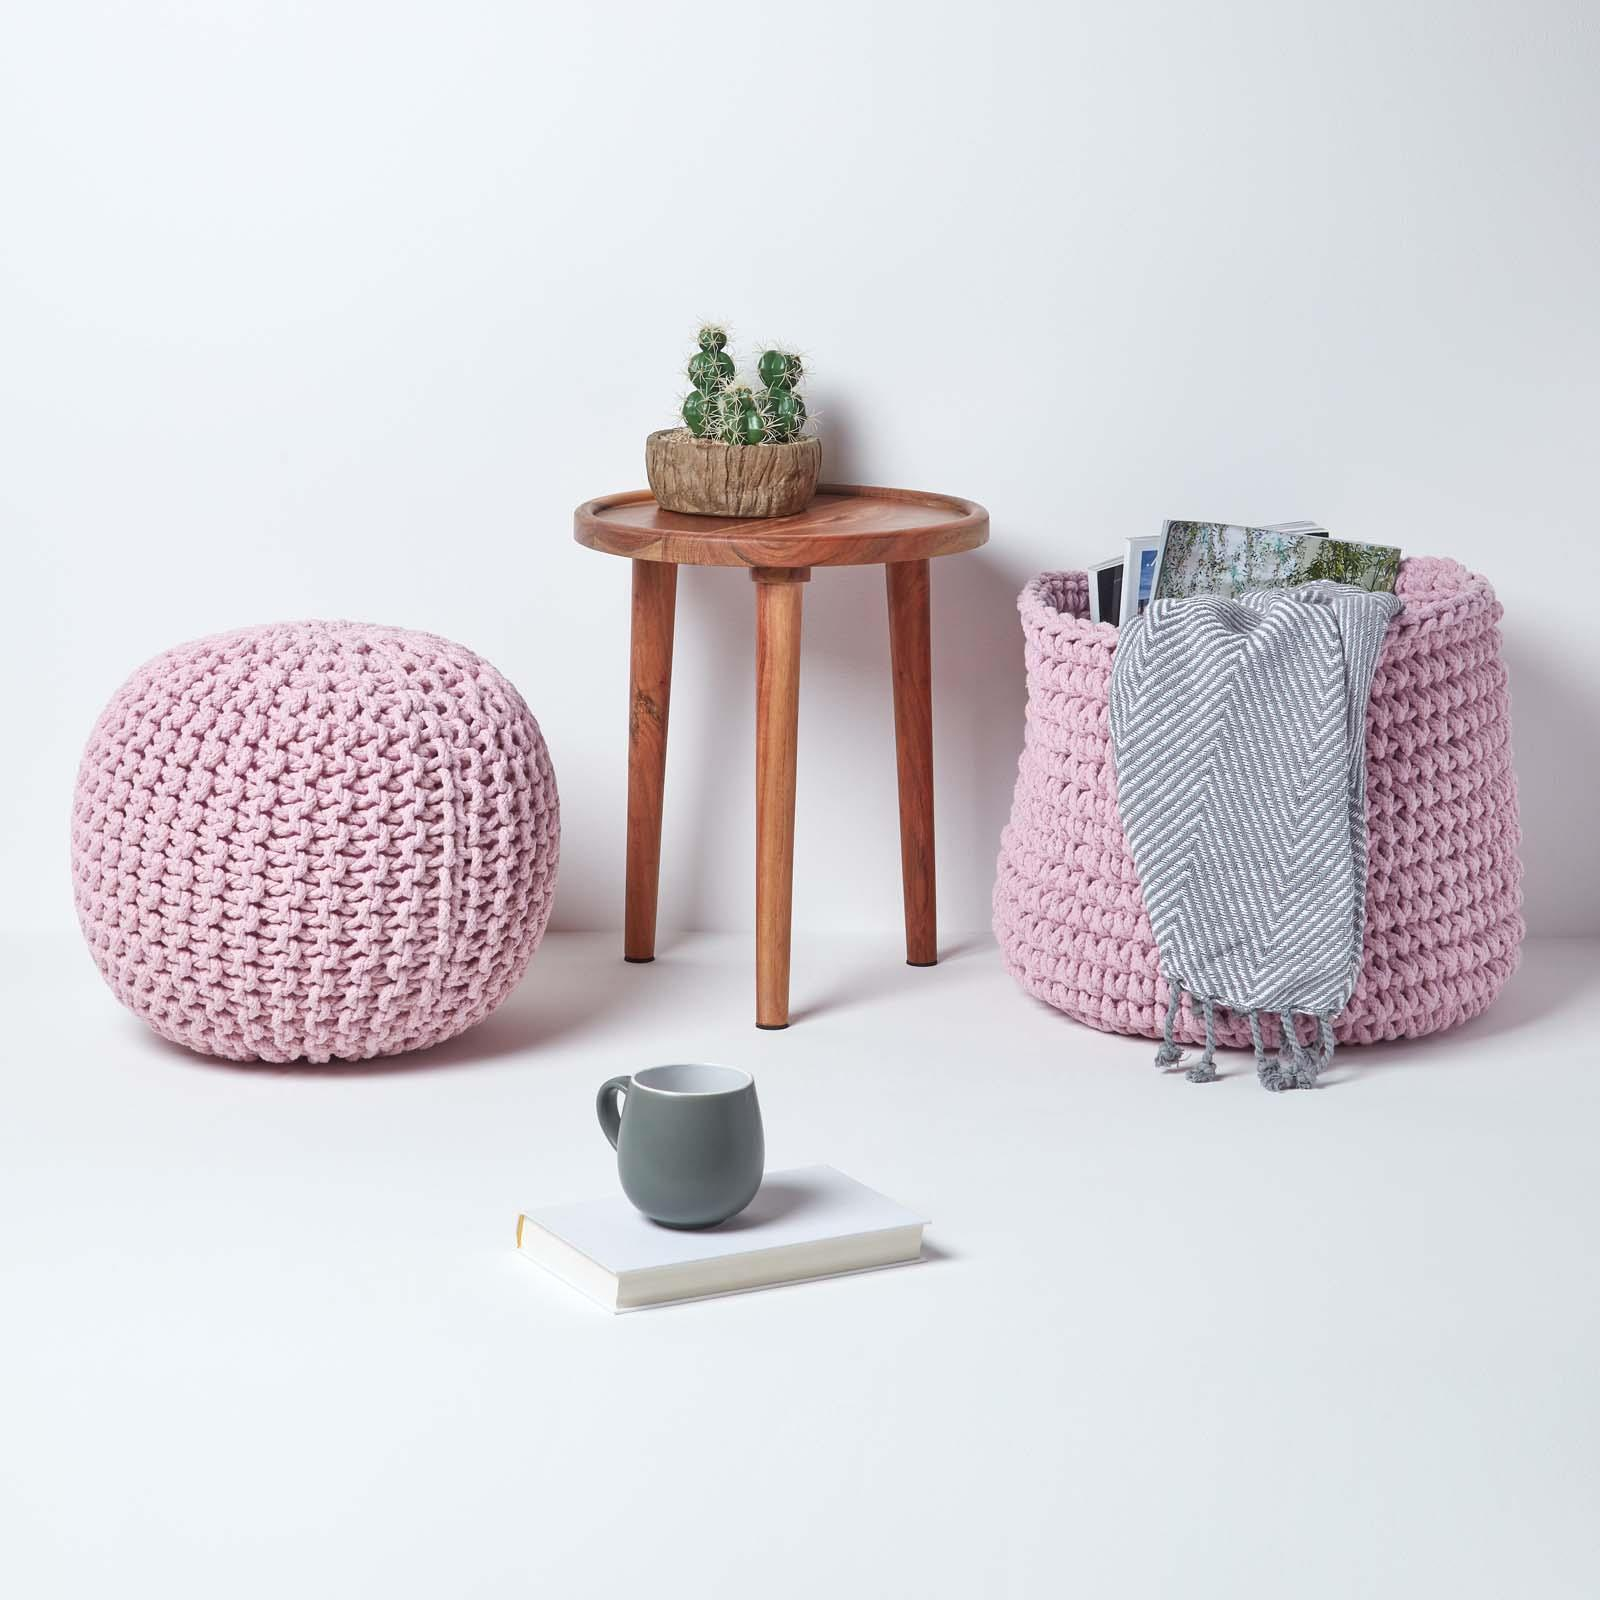 Hand-Knitted-100-Cotton-Pouffes-Round-Sphere-Or-Cube-Square-Chunky-Footstools thumbnail 145